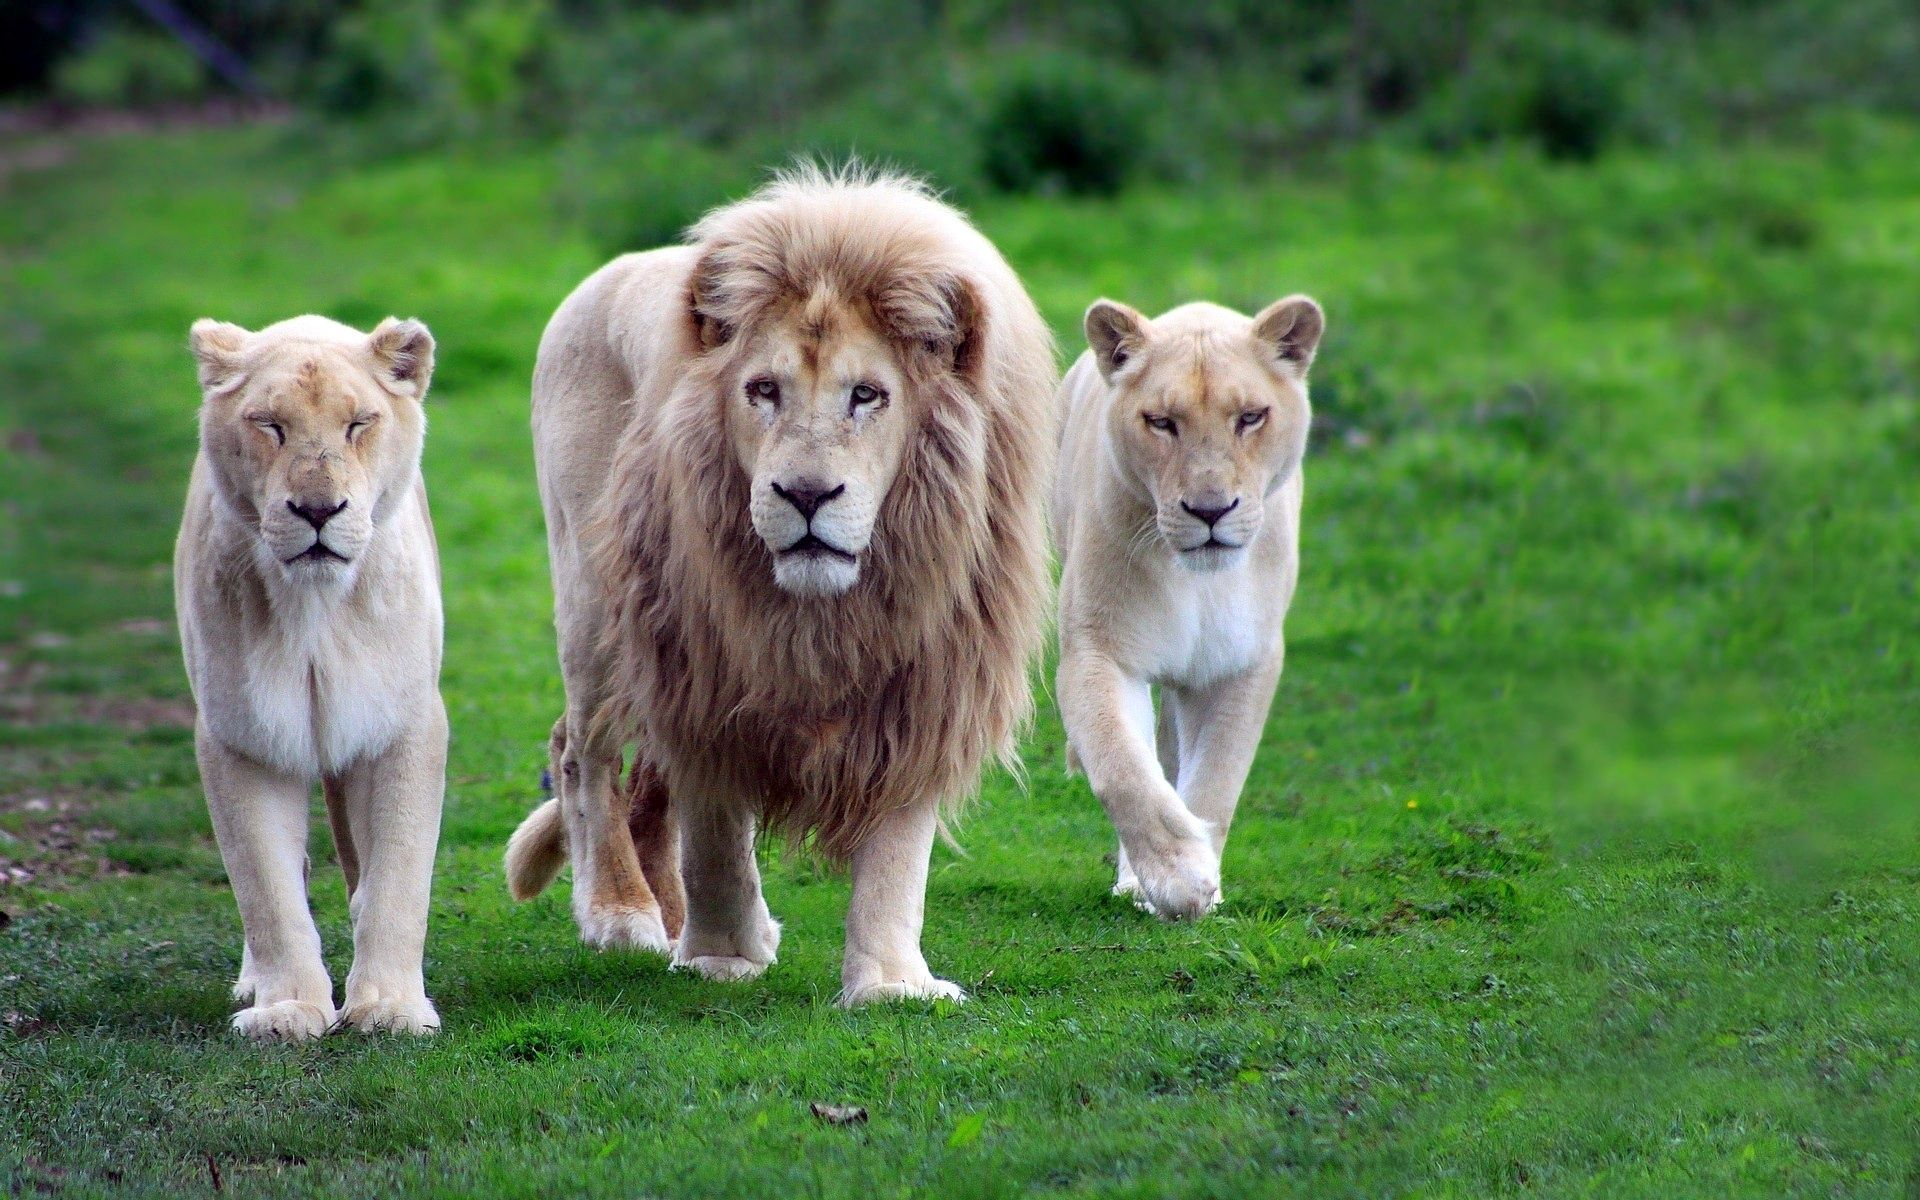 80978 download wallpaper Animals, Family, Grass, Stroll, Gait, Predators, Lions screensavers and pictures for free